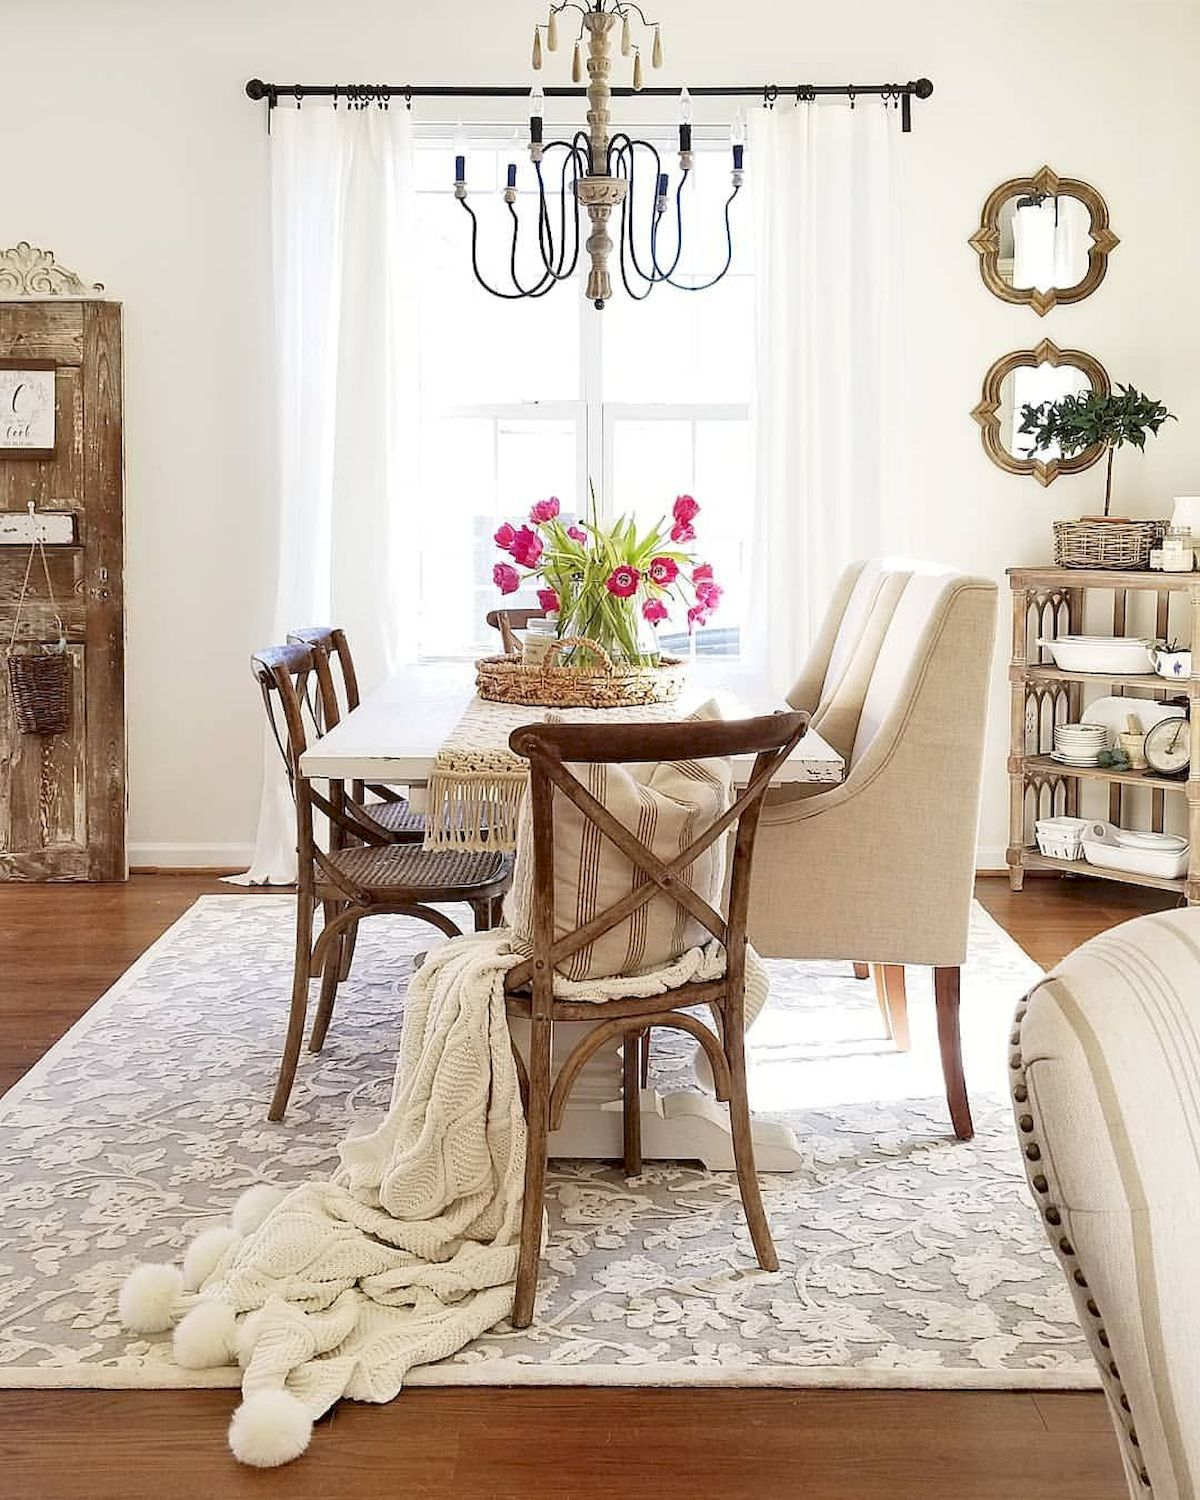 25 Awesome Traditional Dining Design Ideas: 160+ Awesome Formal Design Ideas For Your Dining Room